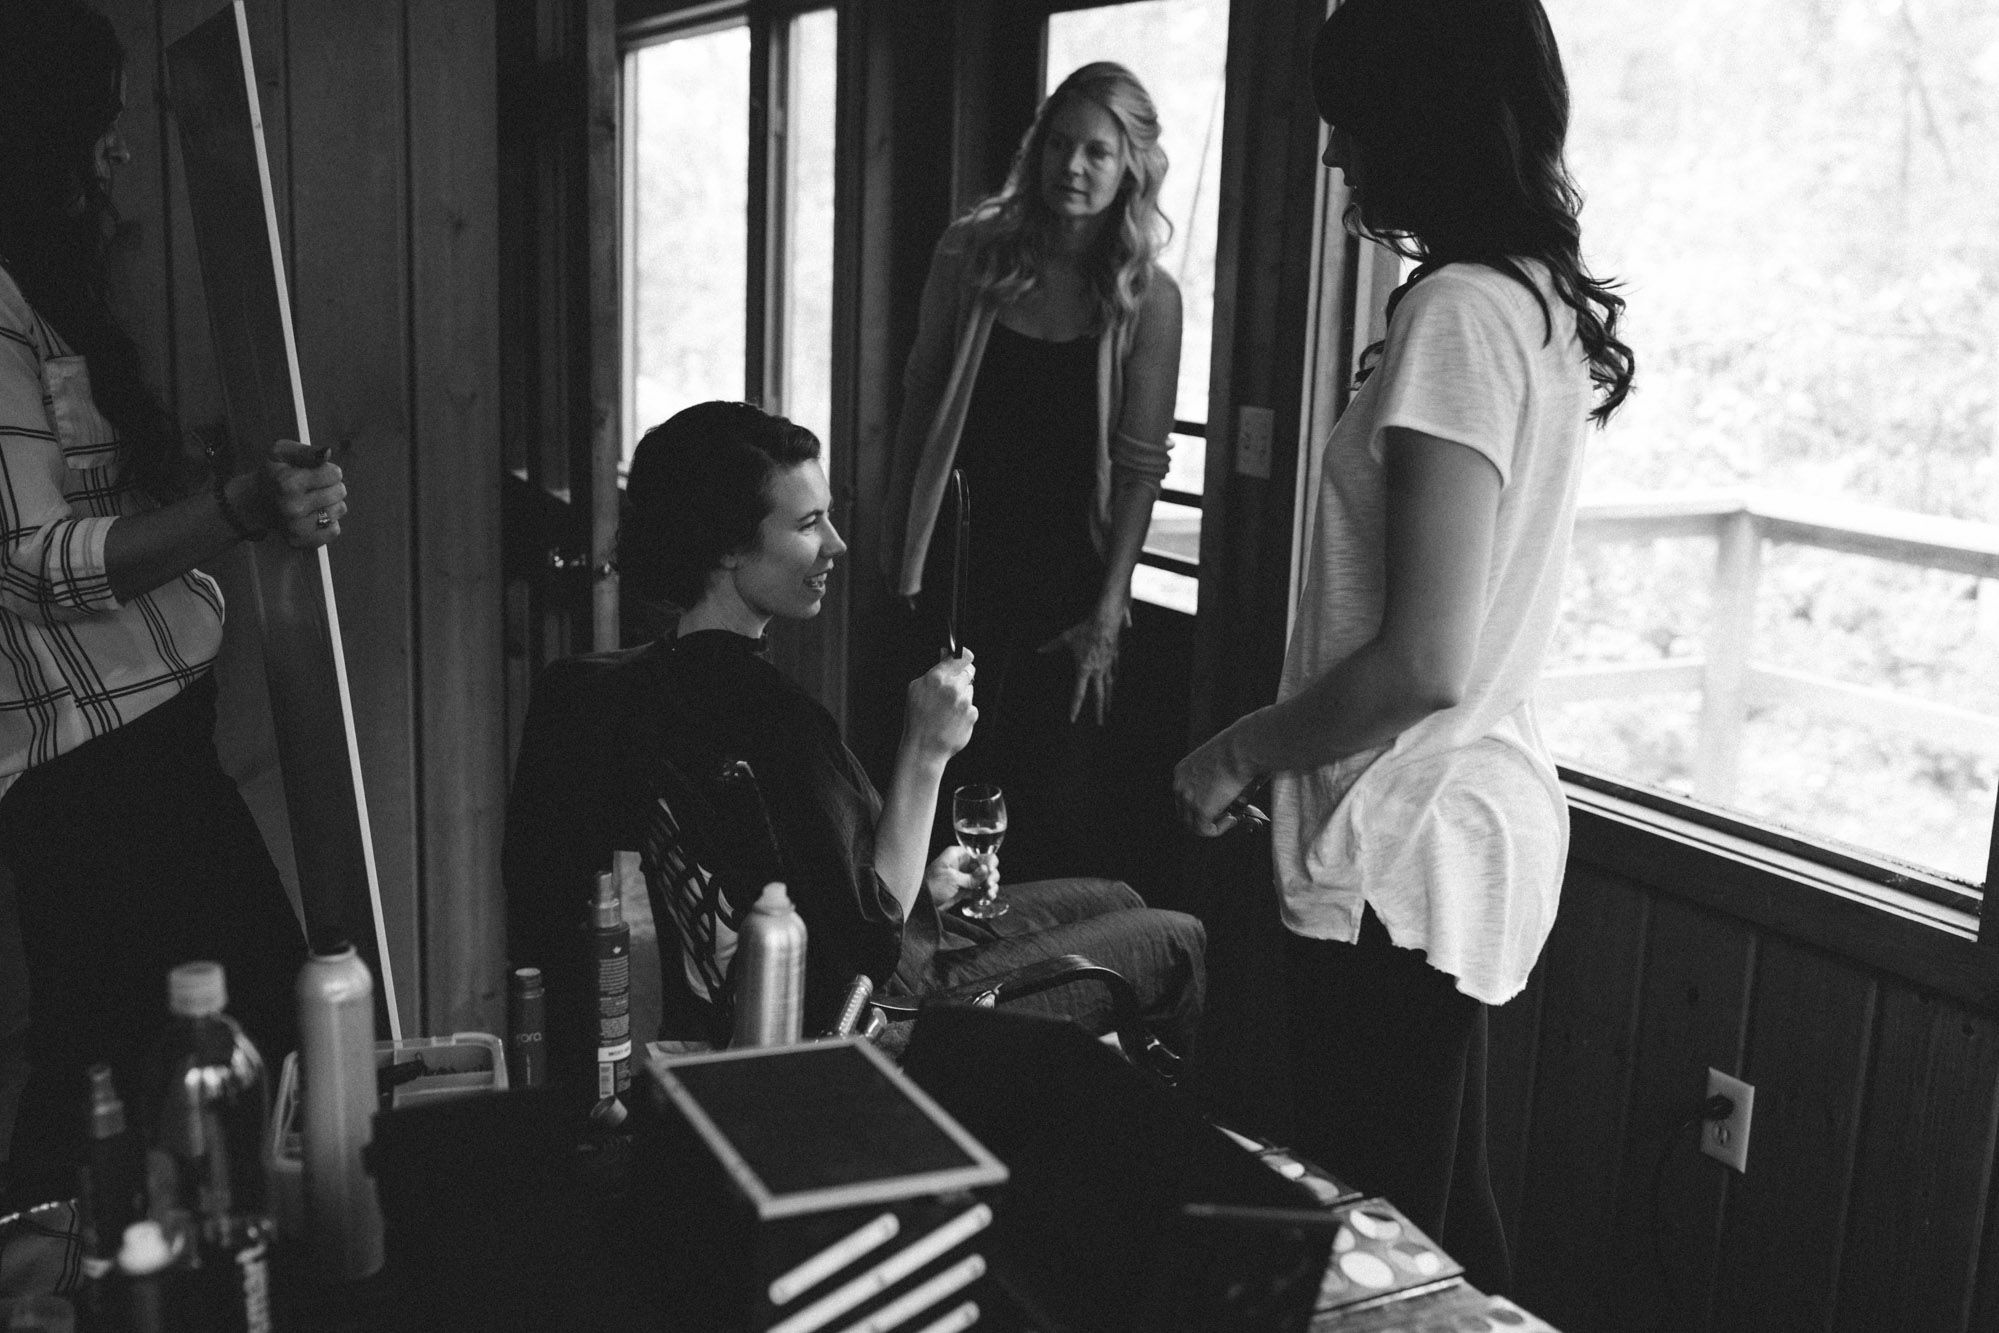 Bride getting ready, as mom watches, on wedding day at Grand View Lodge on Gull Lake